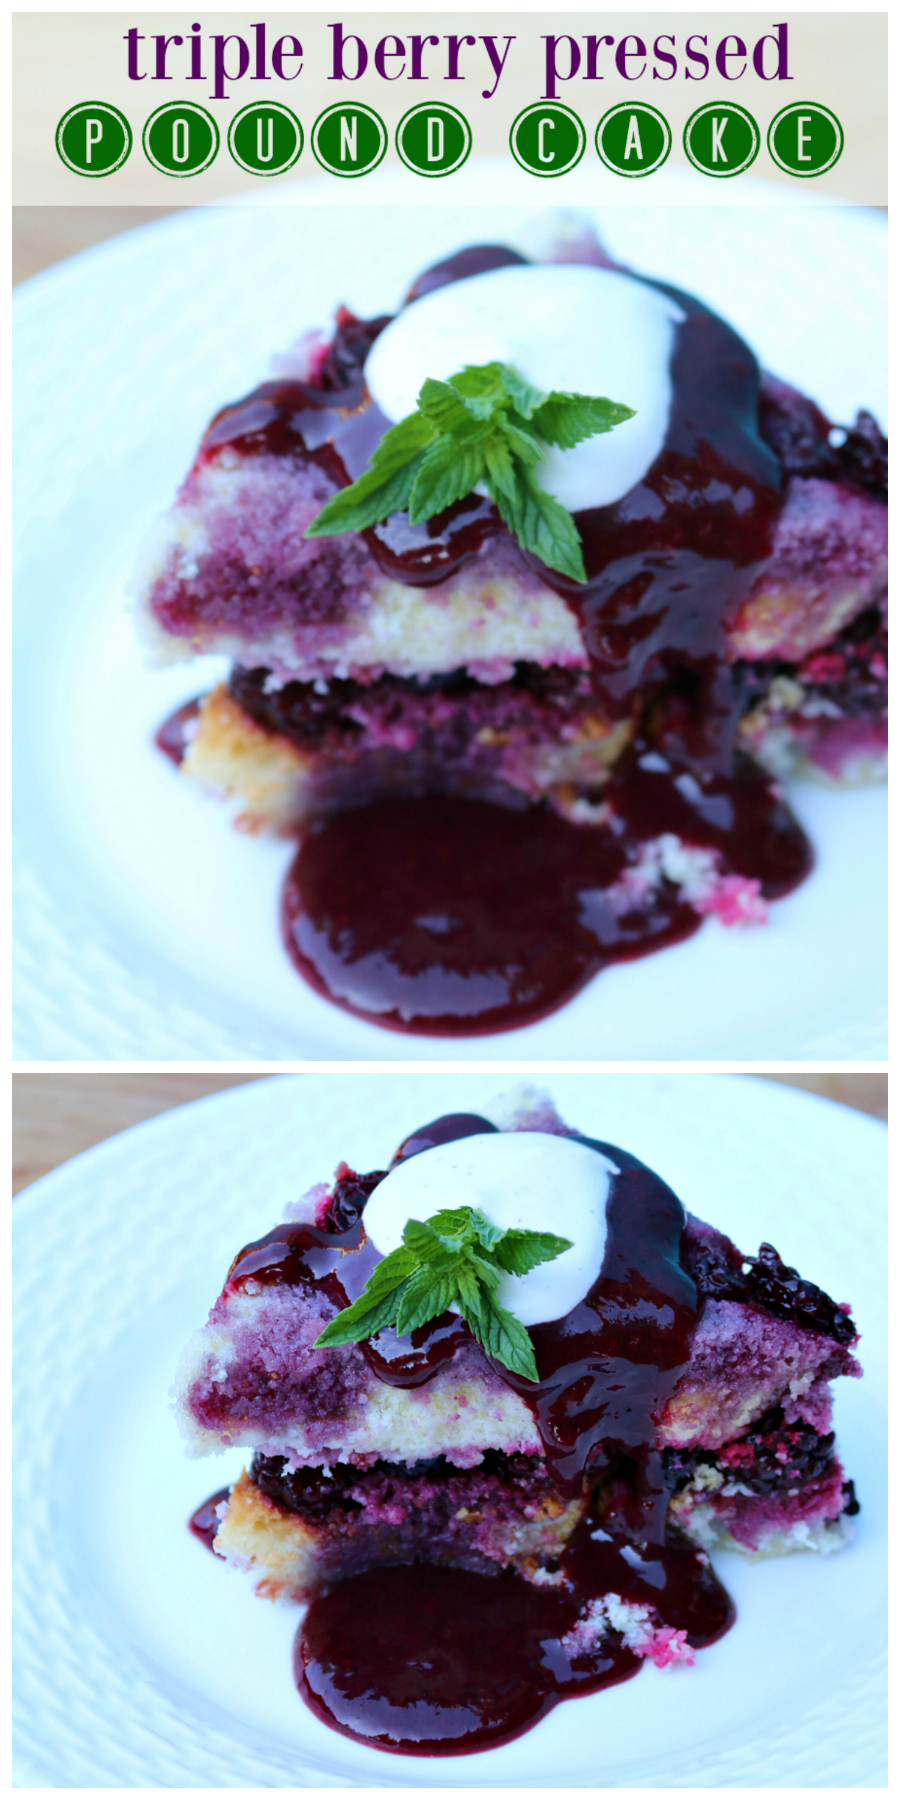 Triple Berry Pressed Pound Cake  | CeceliasGoodStuff.com | Good Food For Good People